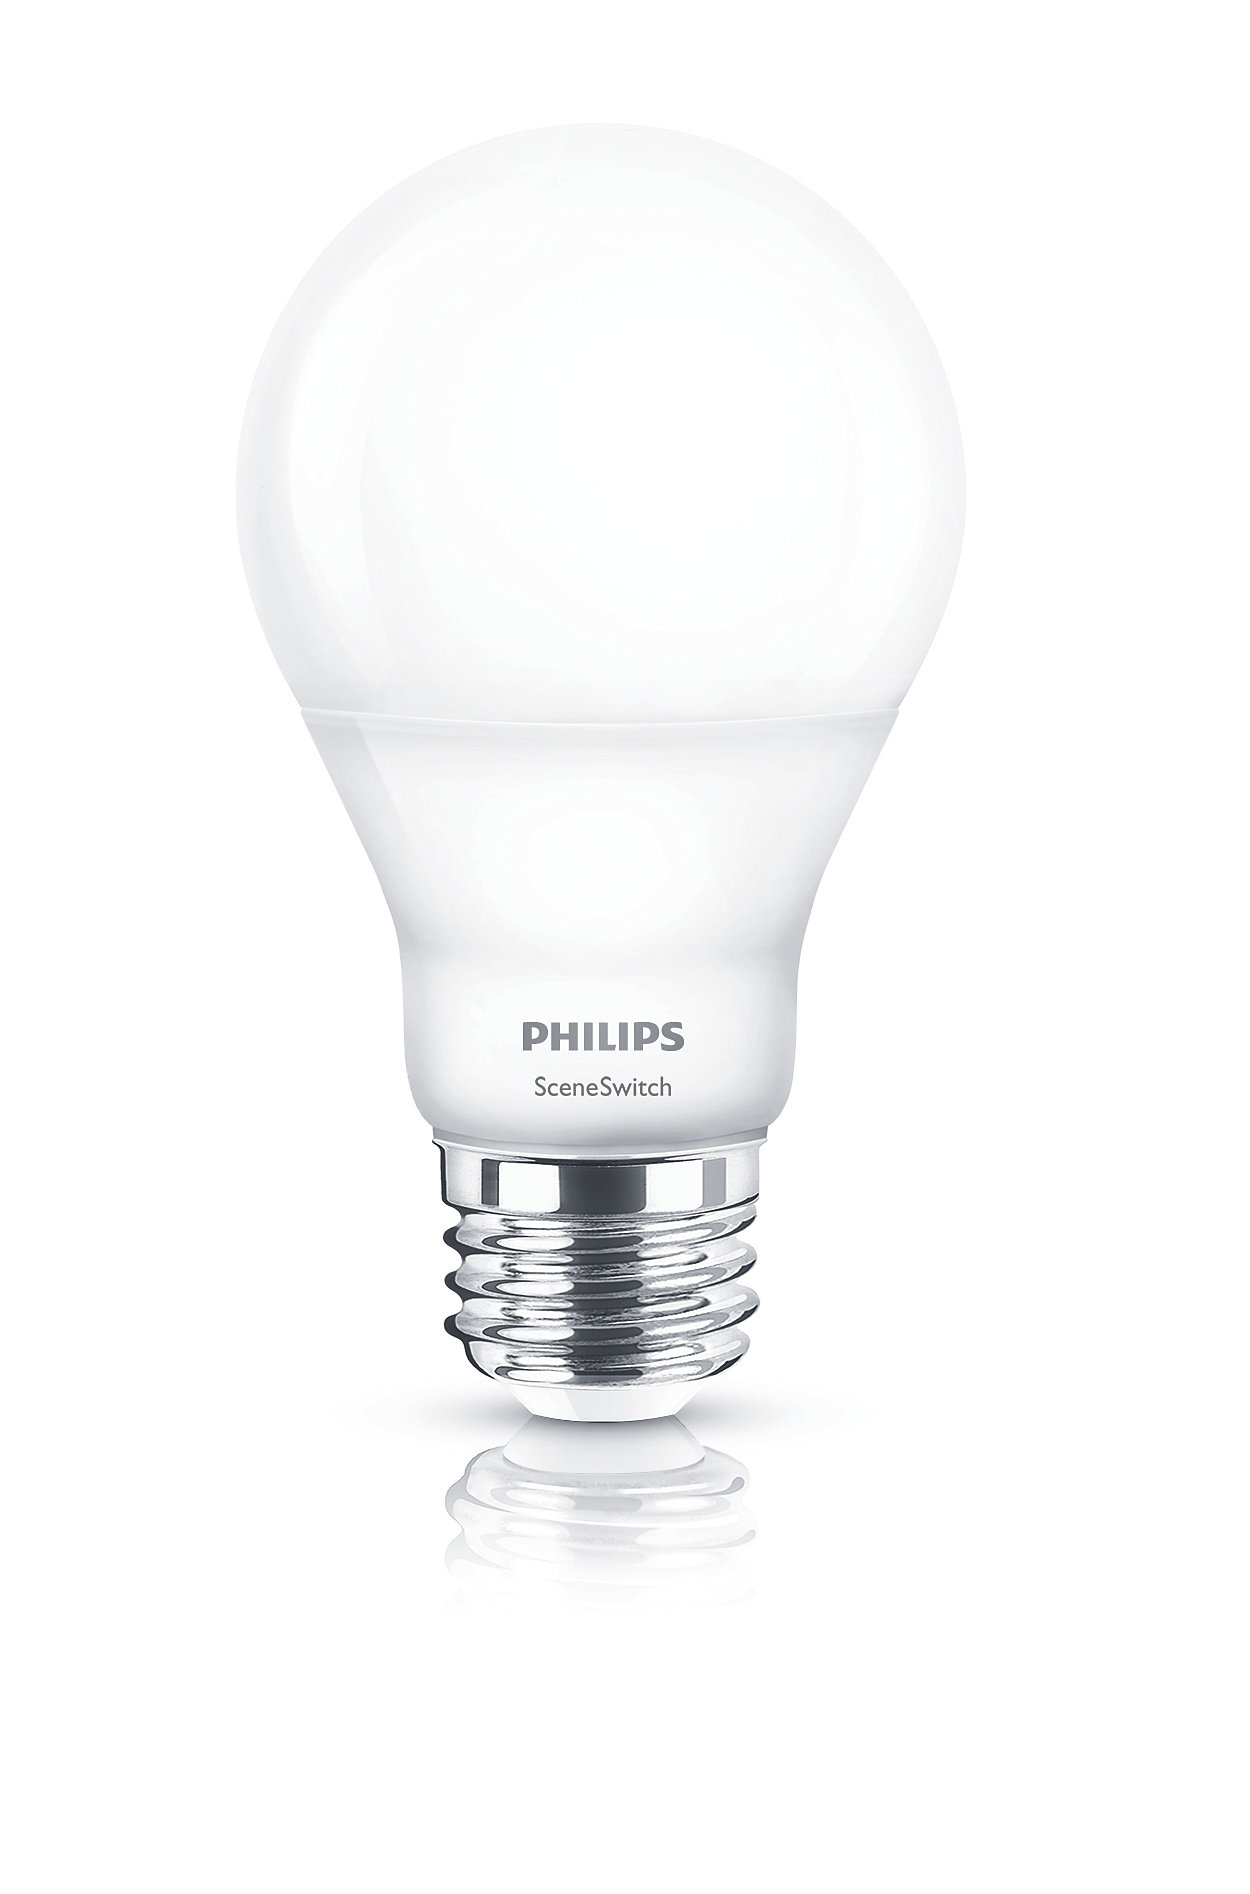 One bulb. Your switch. Three color settings.